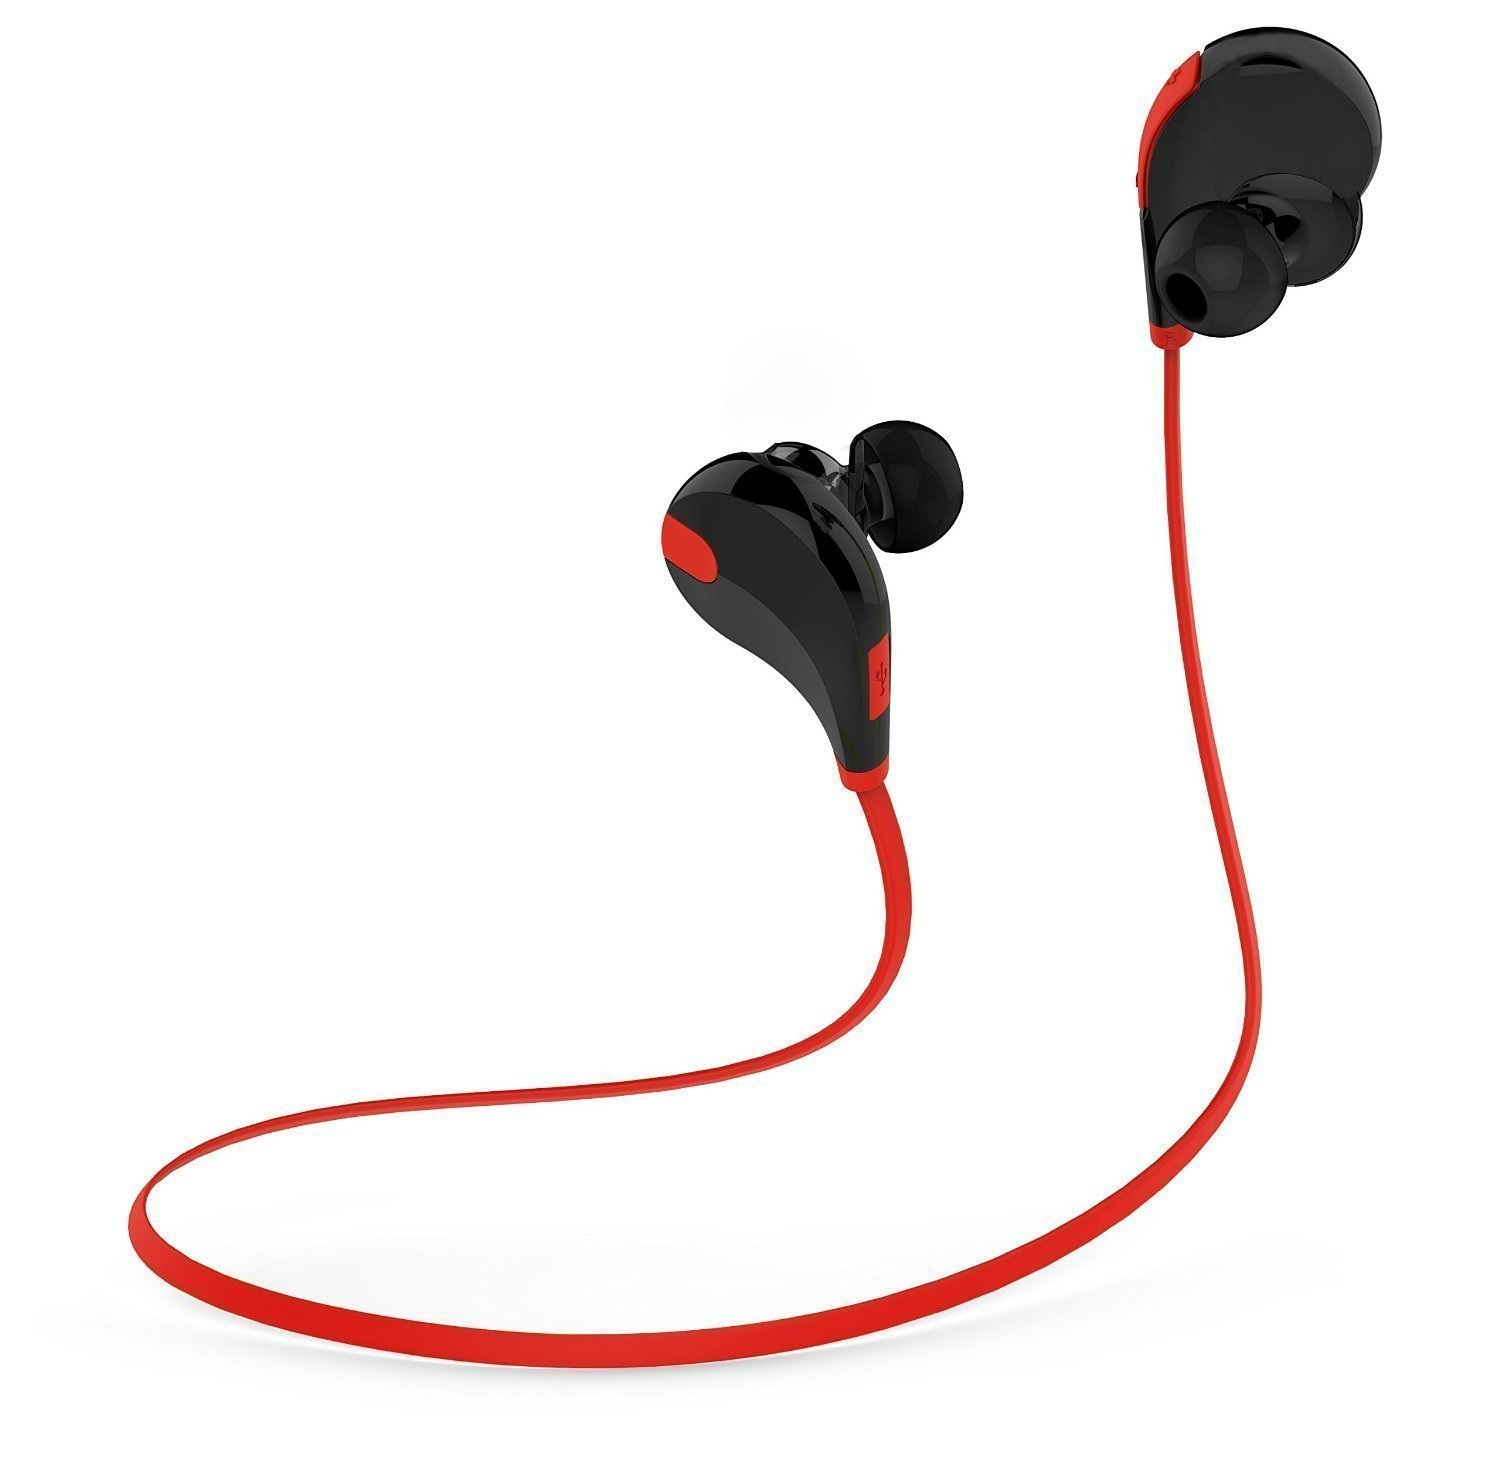 Minisuit Sporty Jogging Bluetooth Wireless Headphones Earbuds with Microphone compatible with iPhone 7, iPhone 7 Plus, Android and Windows Phones